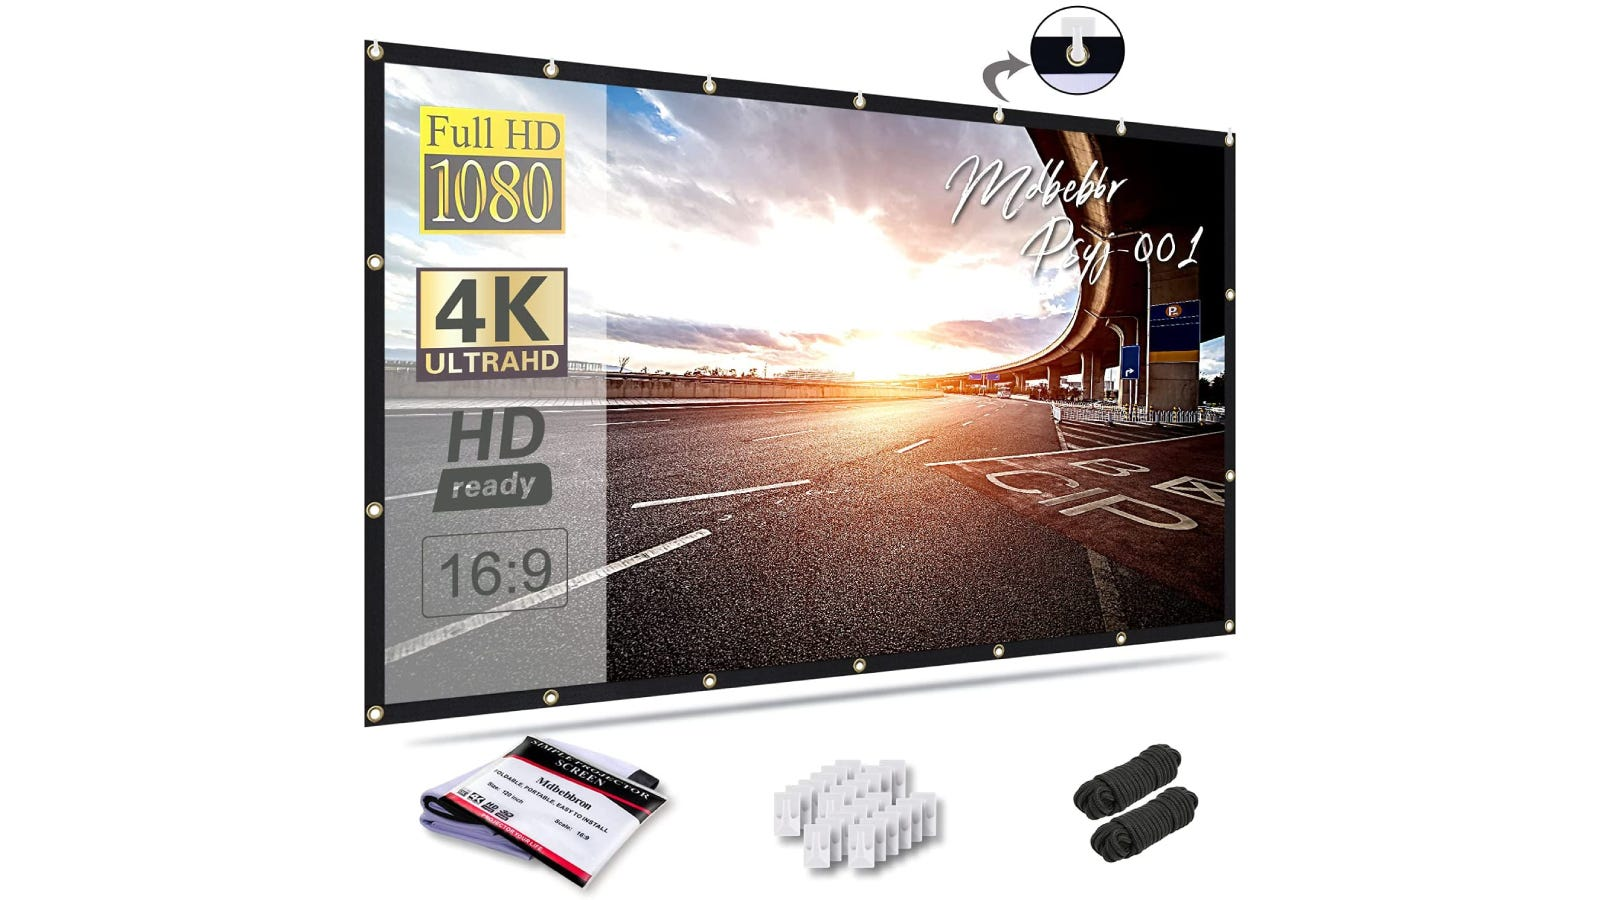 A projector screen displaying a sunny image of a road with the installation items sitting below it.